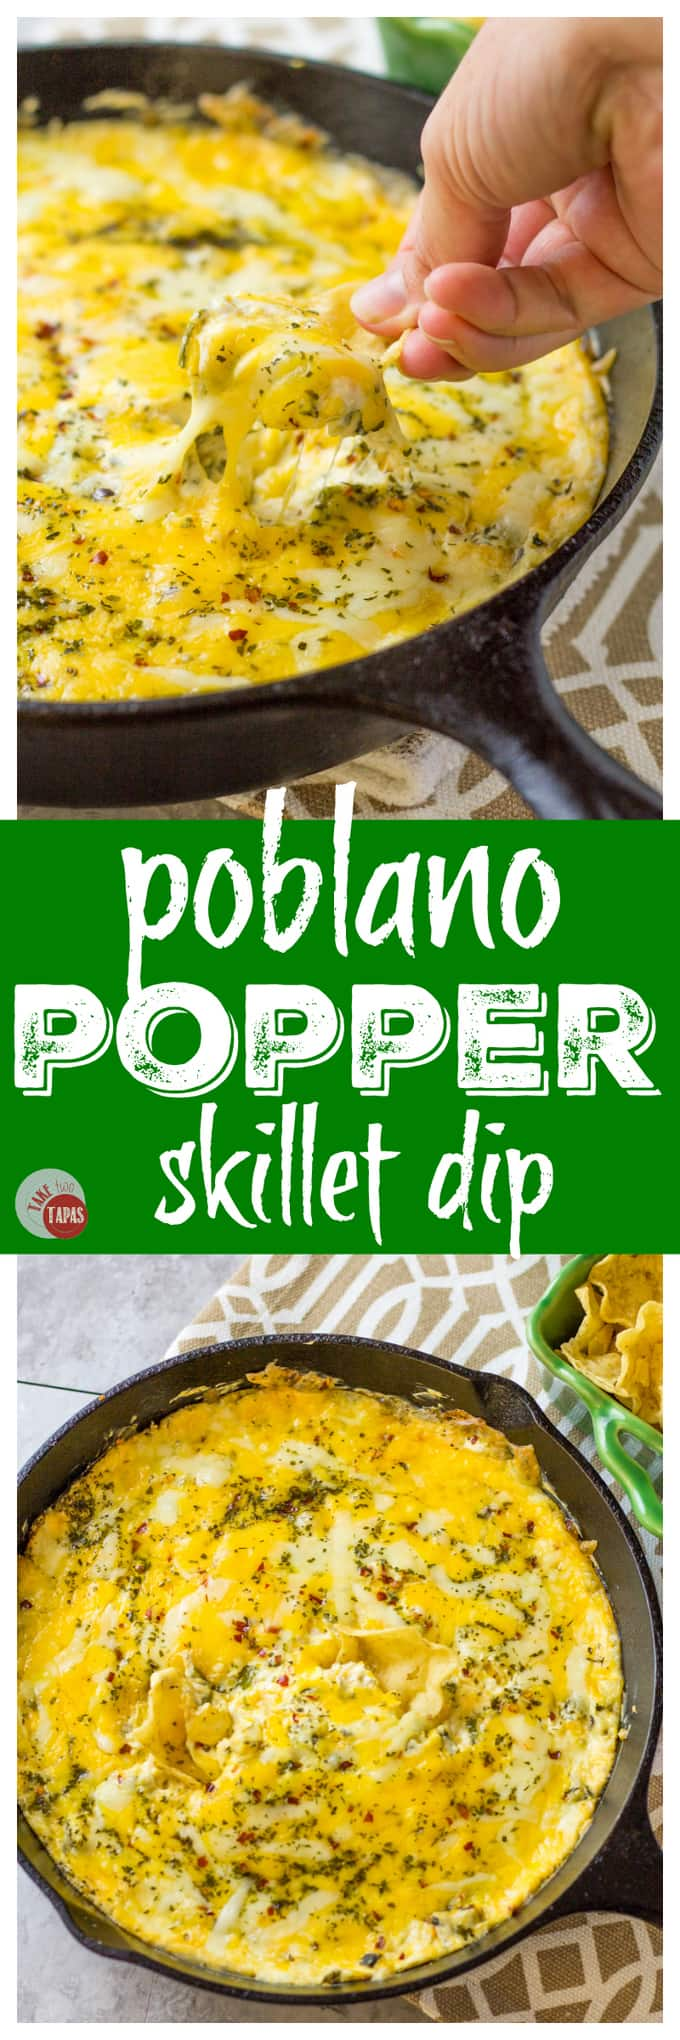 One Pan Poblano Popper Skillet Dip | Take Two Tapas | #SkilletDip #PoblanoPopper #JalapeñoPopper #TailgatingDip #MakeAheadTailgatingFood